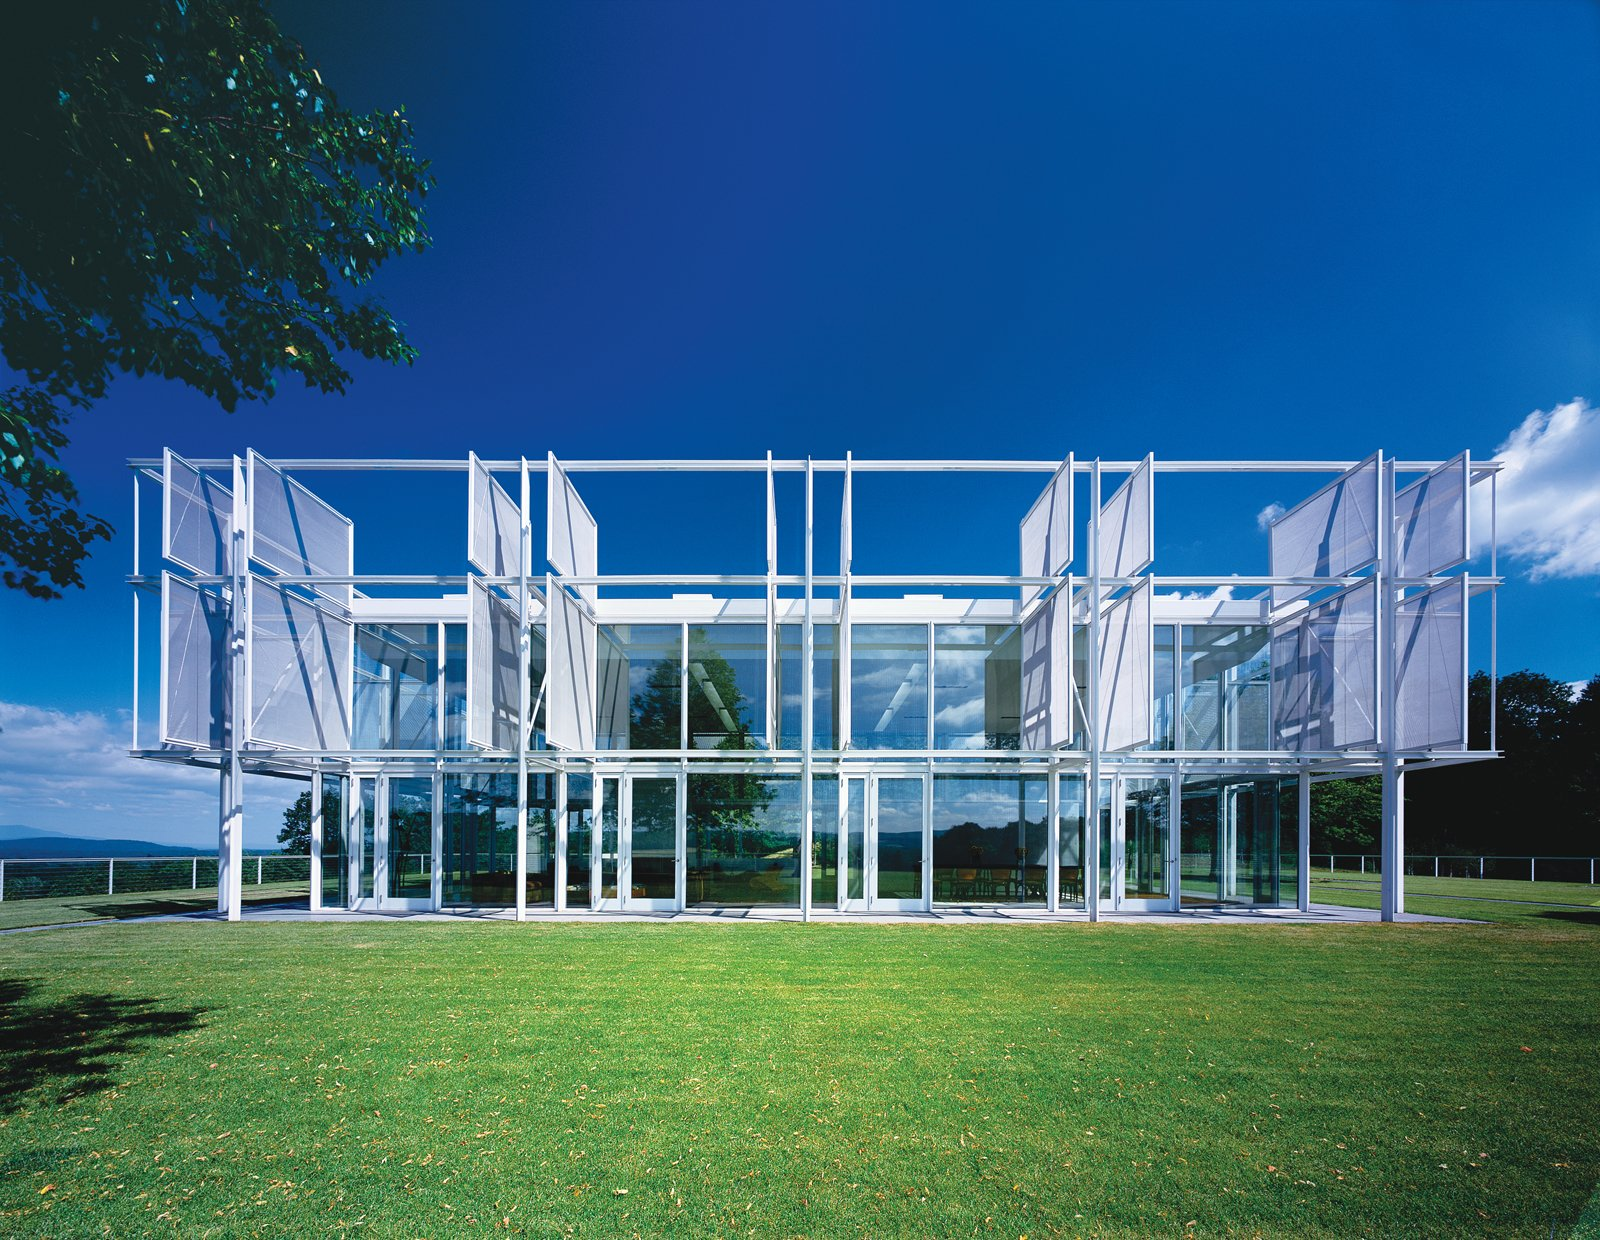 A Thomas Phifer-Designed Glass-and-Steel Masterpiece For Sale - Photo 1 of 15